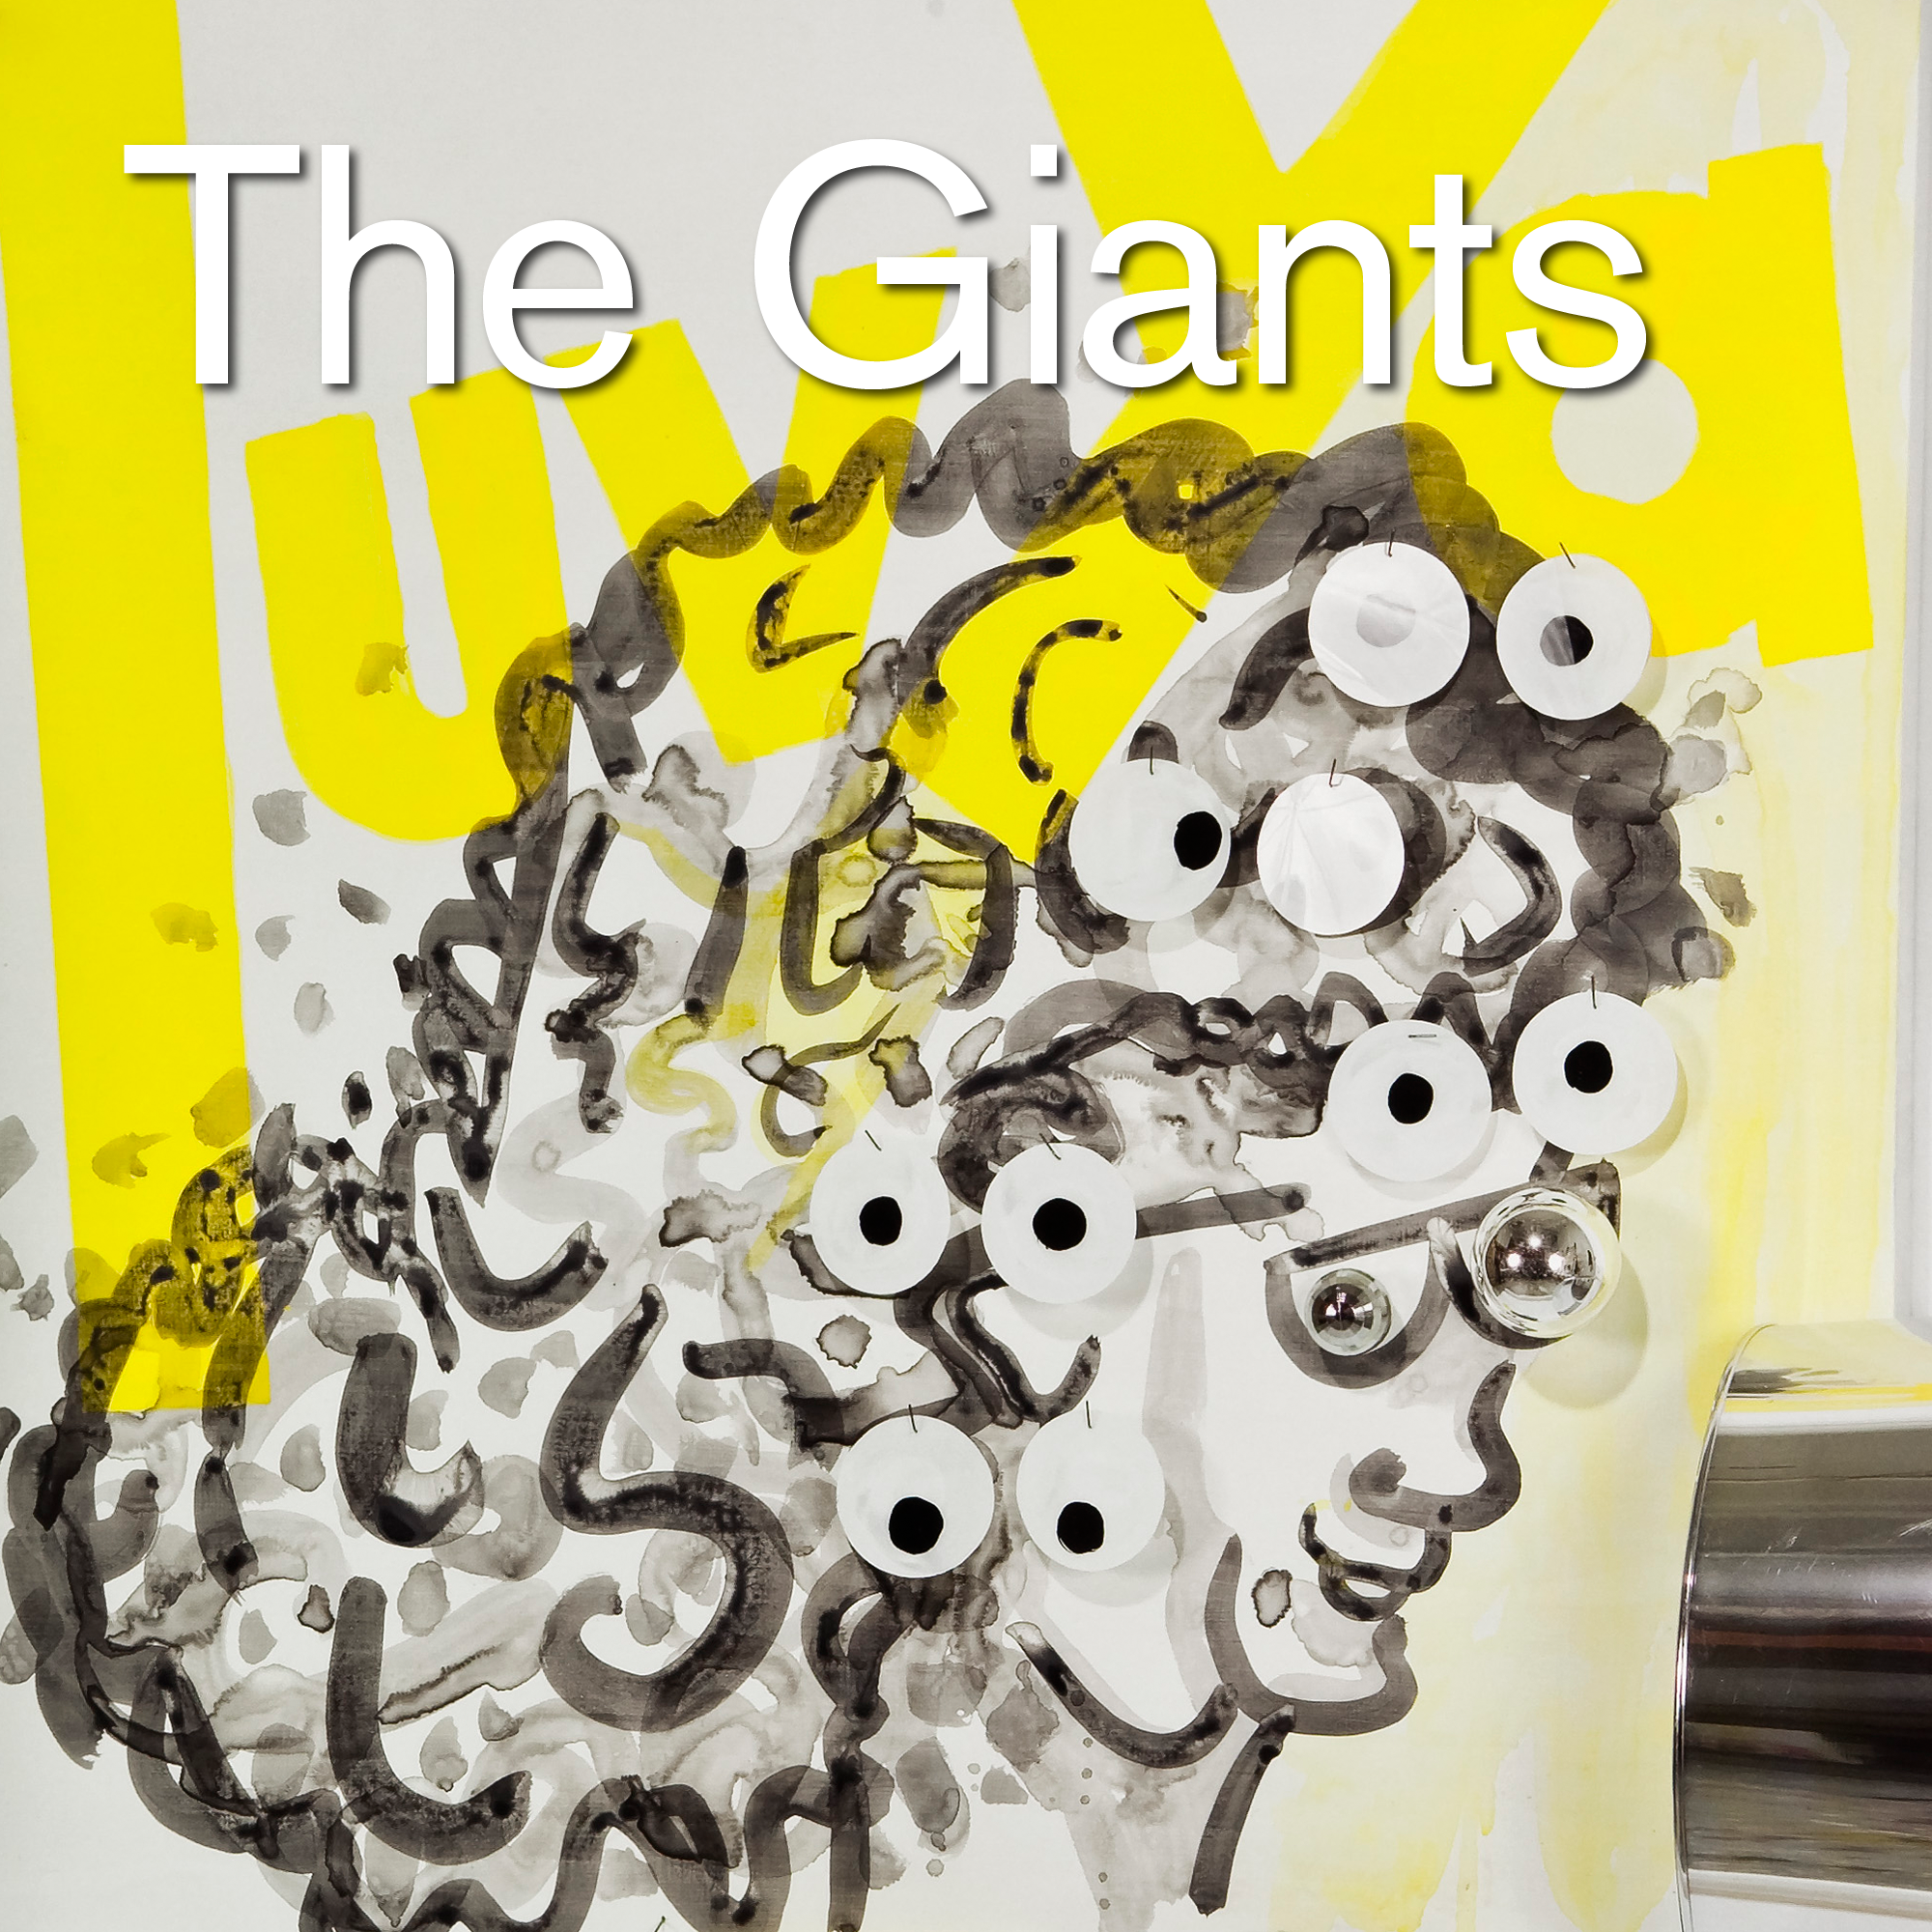 The Giants